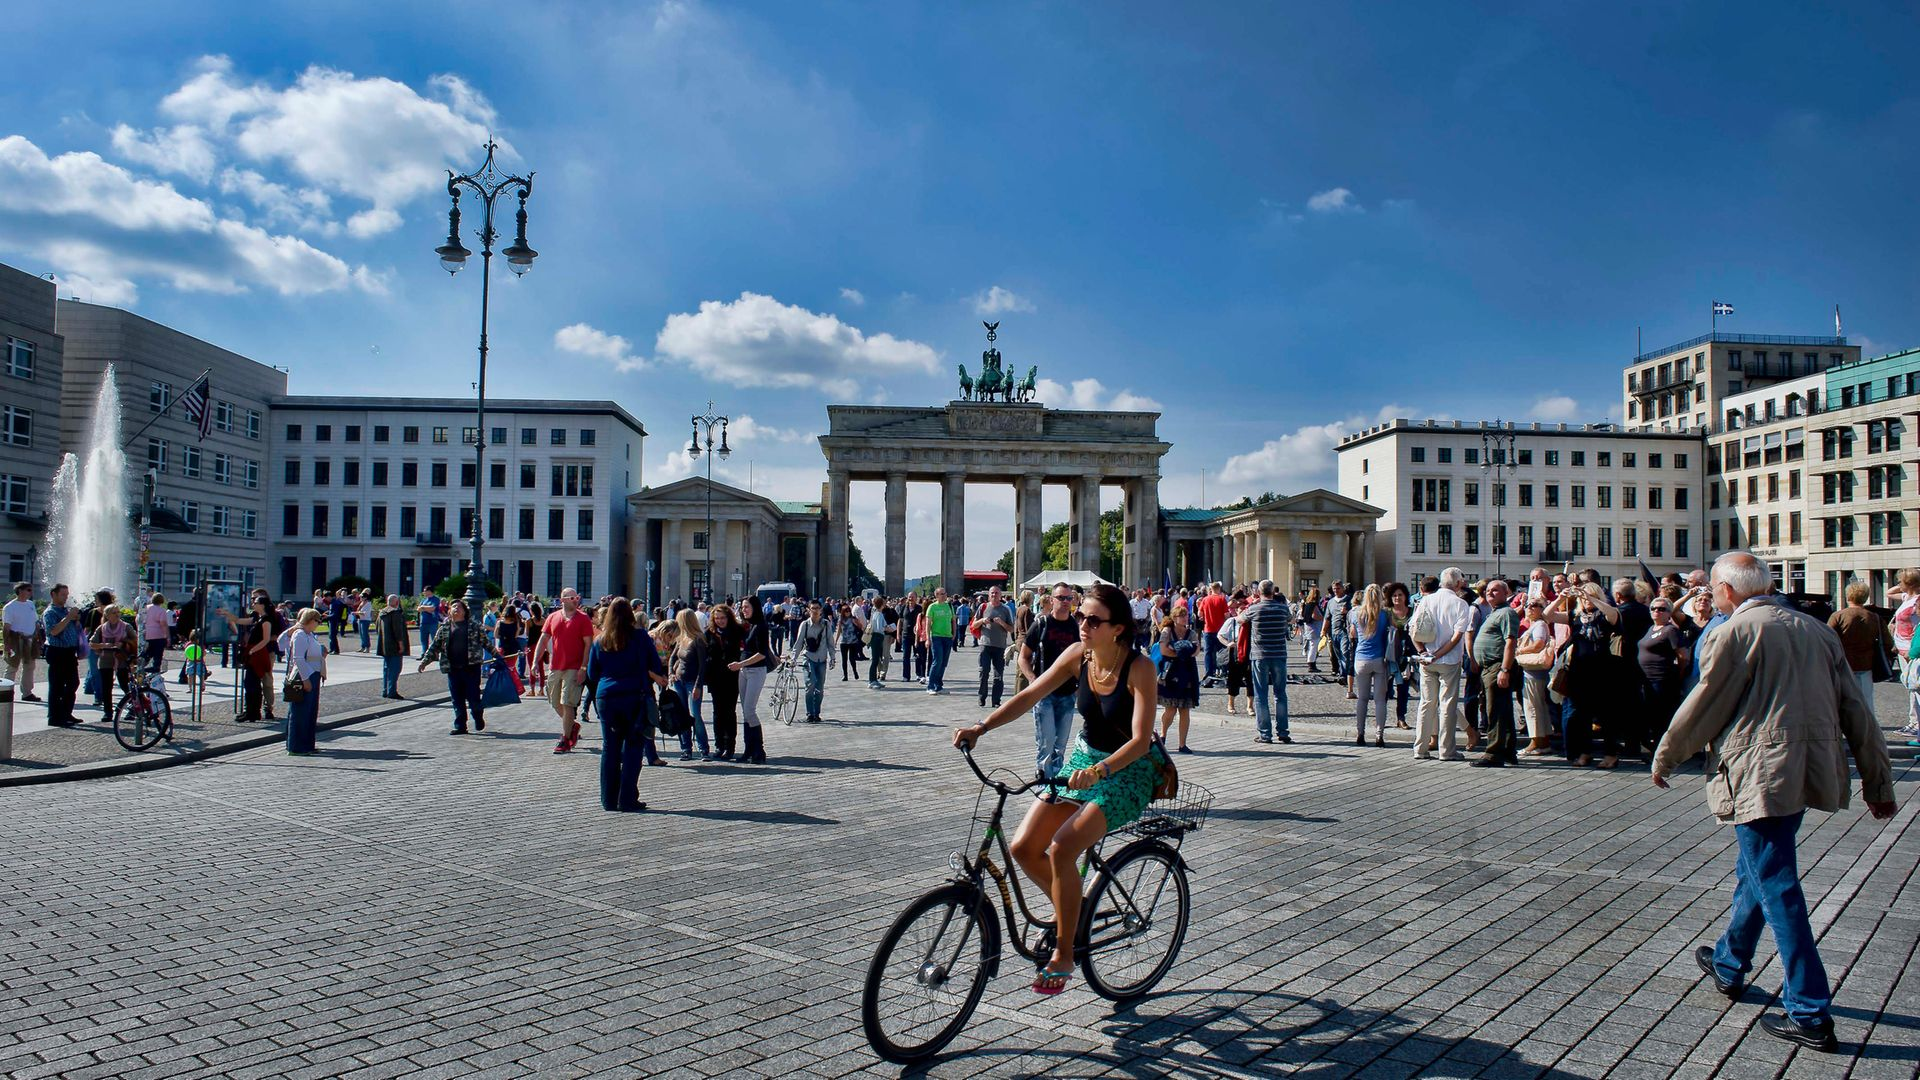 BOLSHY BERLINERS: The capital is home to the rudest Germans, says columnist Tanit Koch - Credit: Corbis via Getty Images